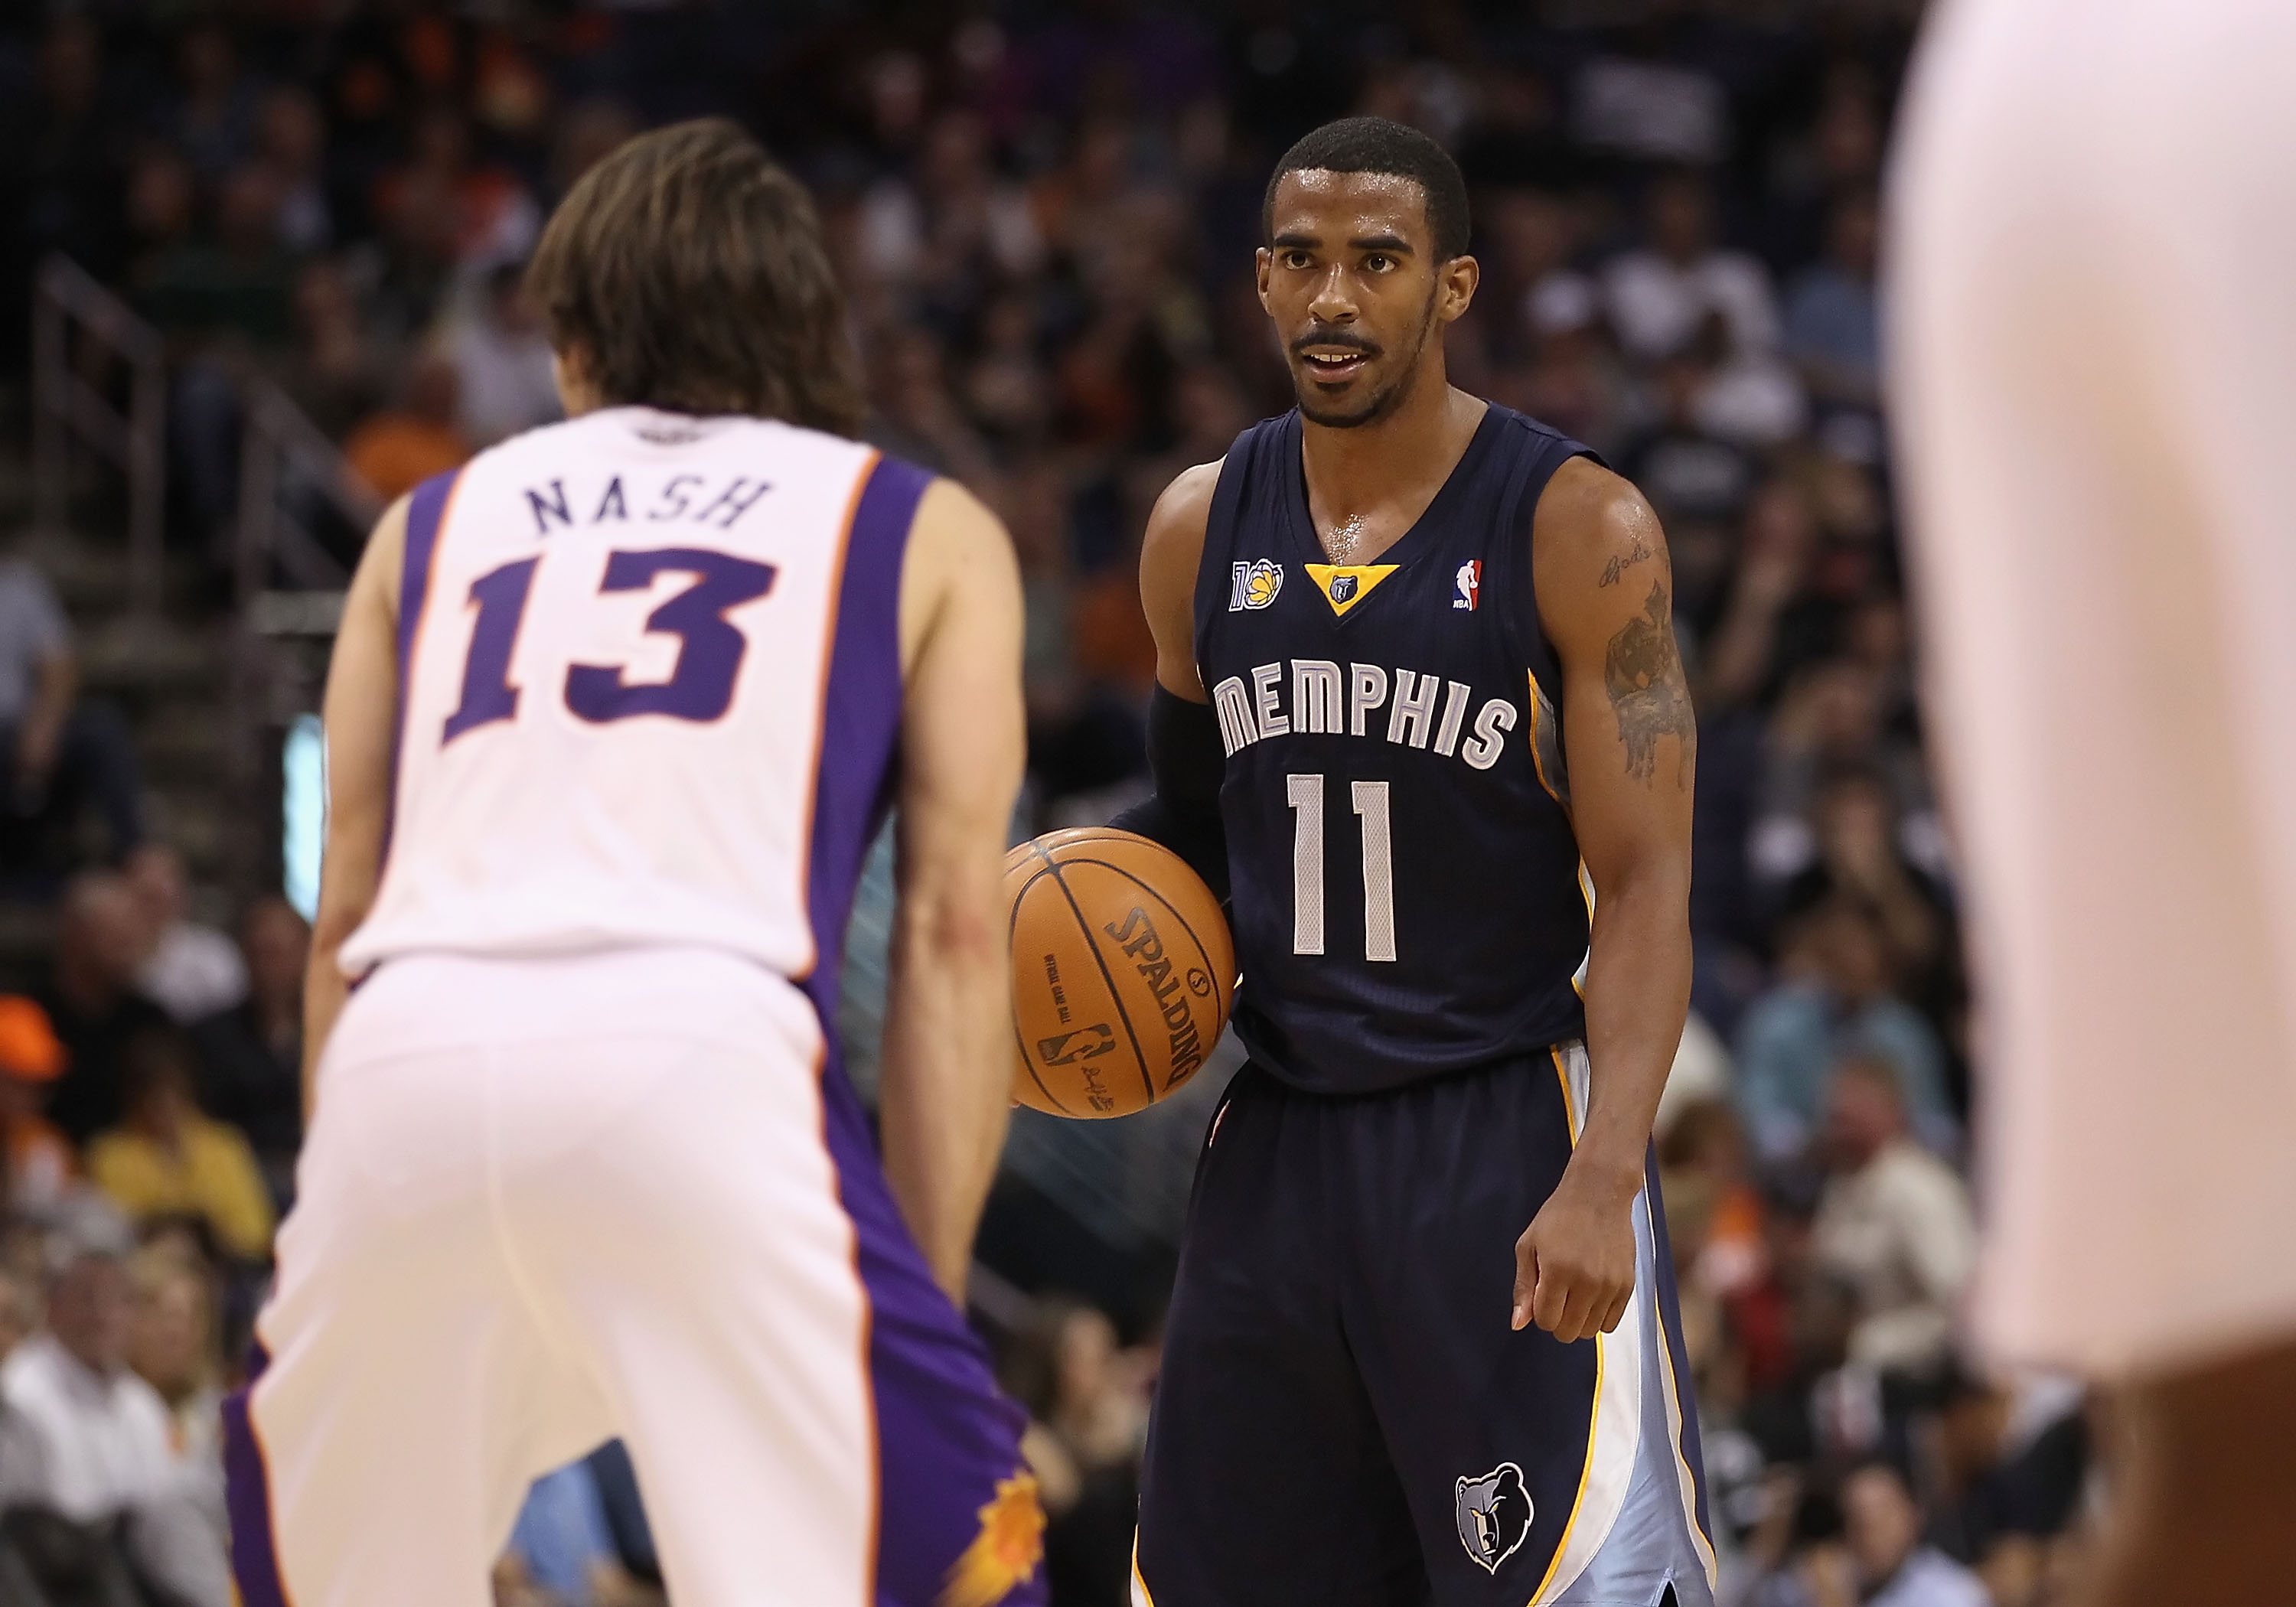 PHOENIX - DECEMBER 08:  Mike Conley #11 of the Memphis Grizzlies handles the ball against the Phoenix Suns during the NBA game at US Airways Center on December 8, 2010 in Phoenix, Arizona. NOTE TO USER: User expressly acknowledges and agrees that, by down